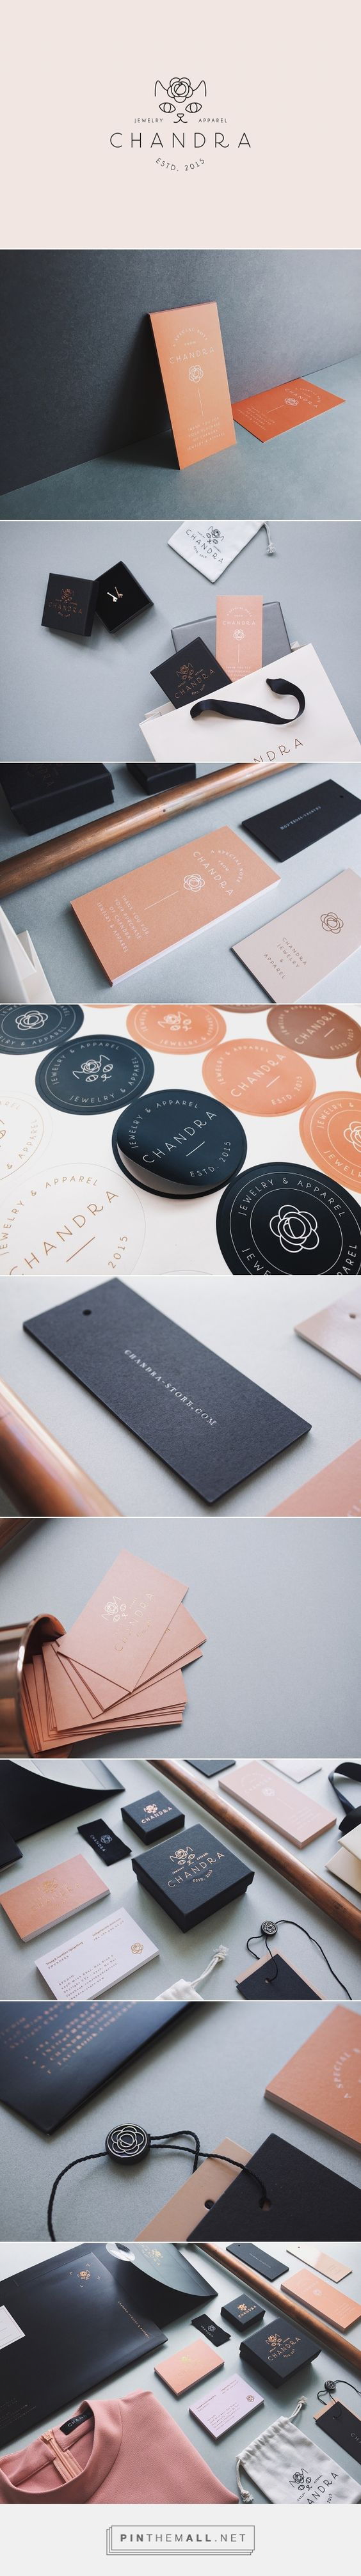 CHANDRA on Behance | Fivestar Branding – Design and Branding Agency &…